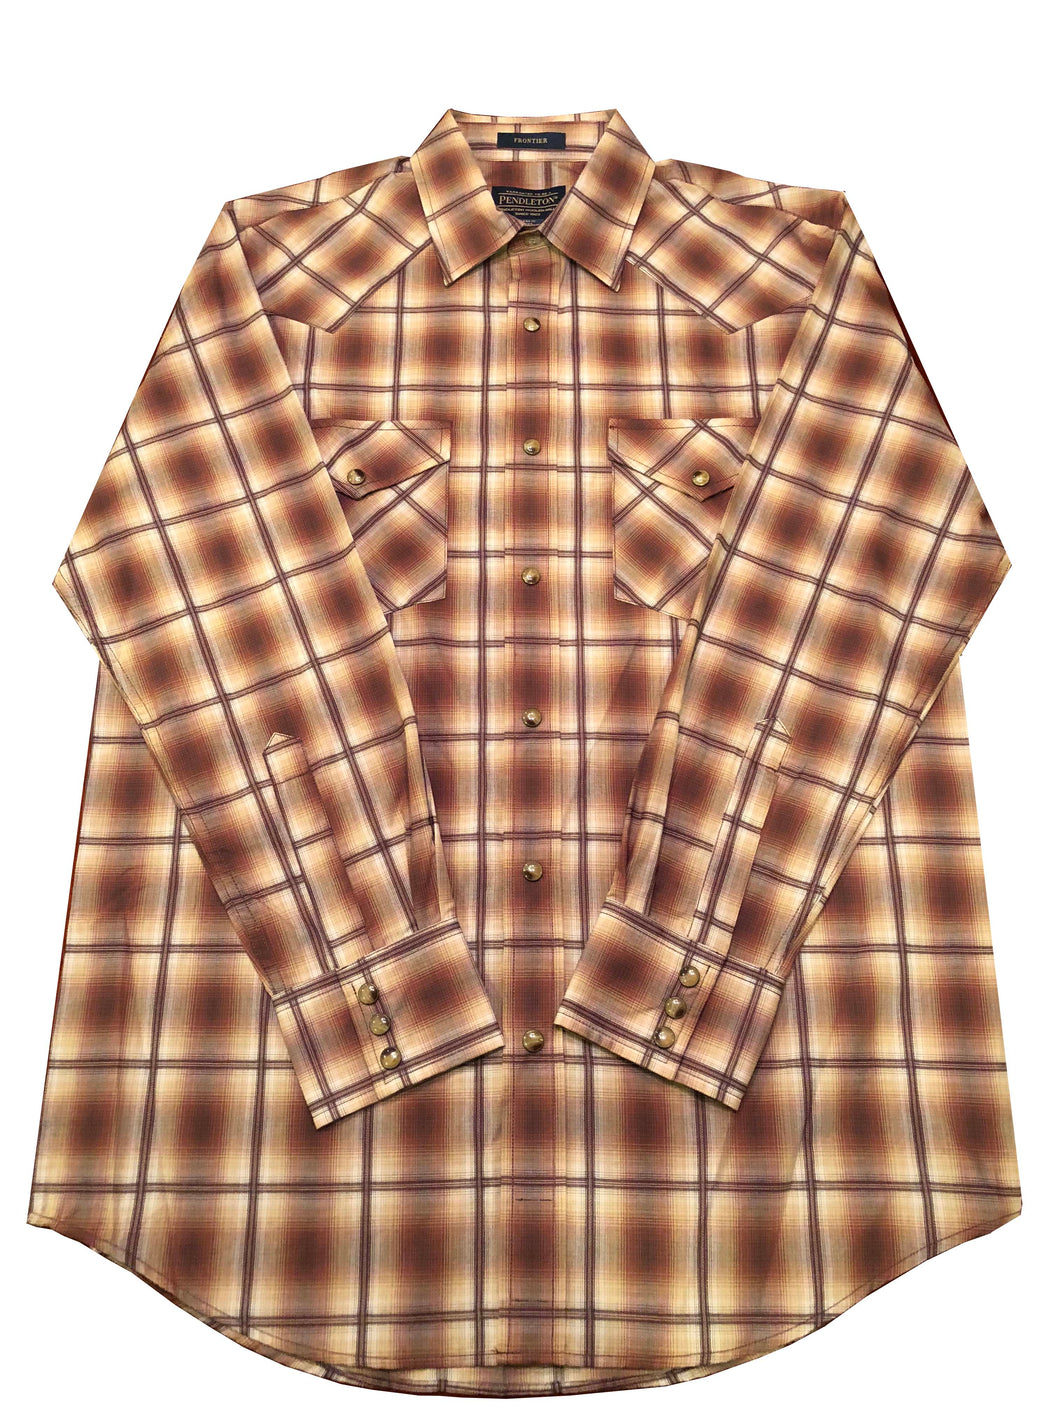 Pendleton Frontier Button-Up (Brown and Cream)